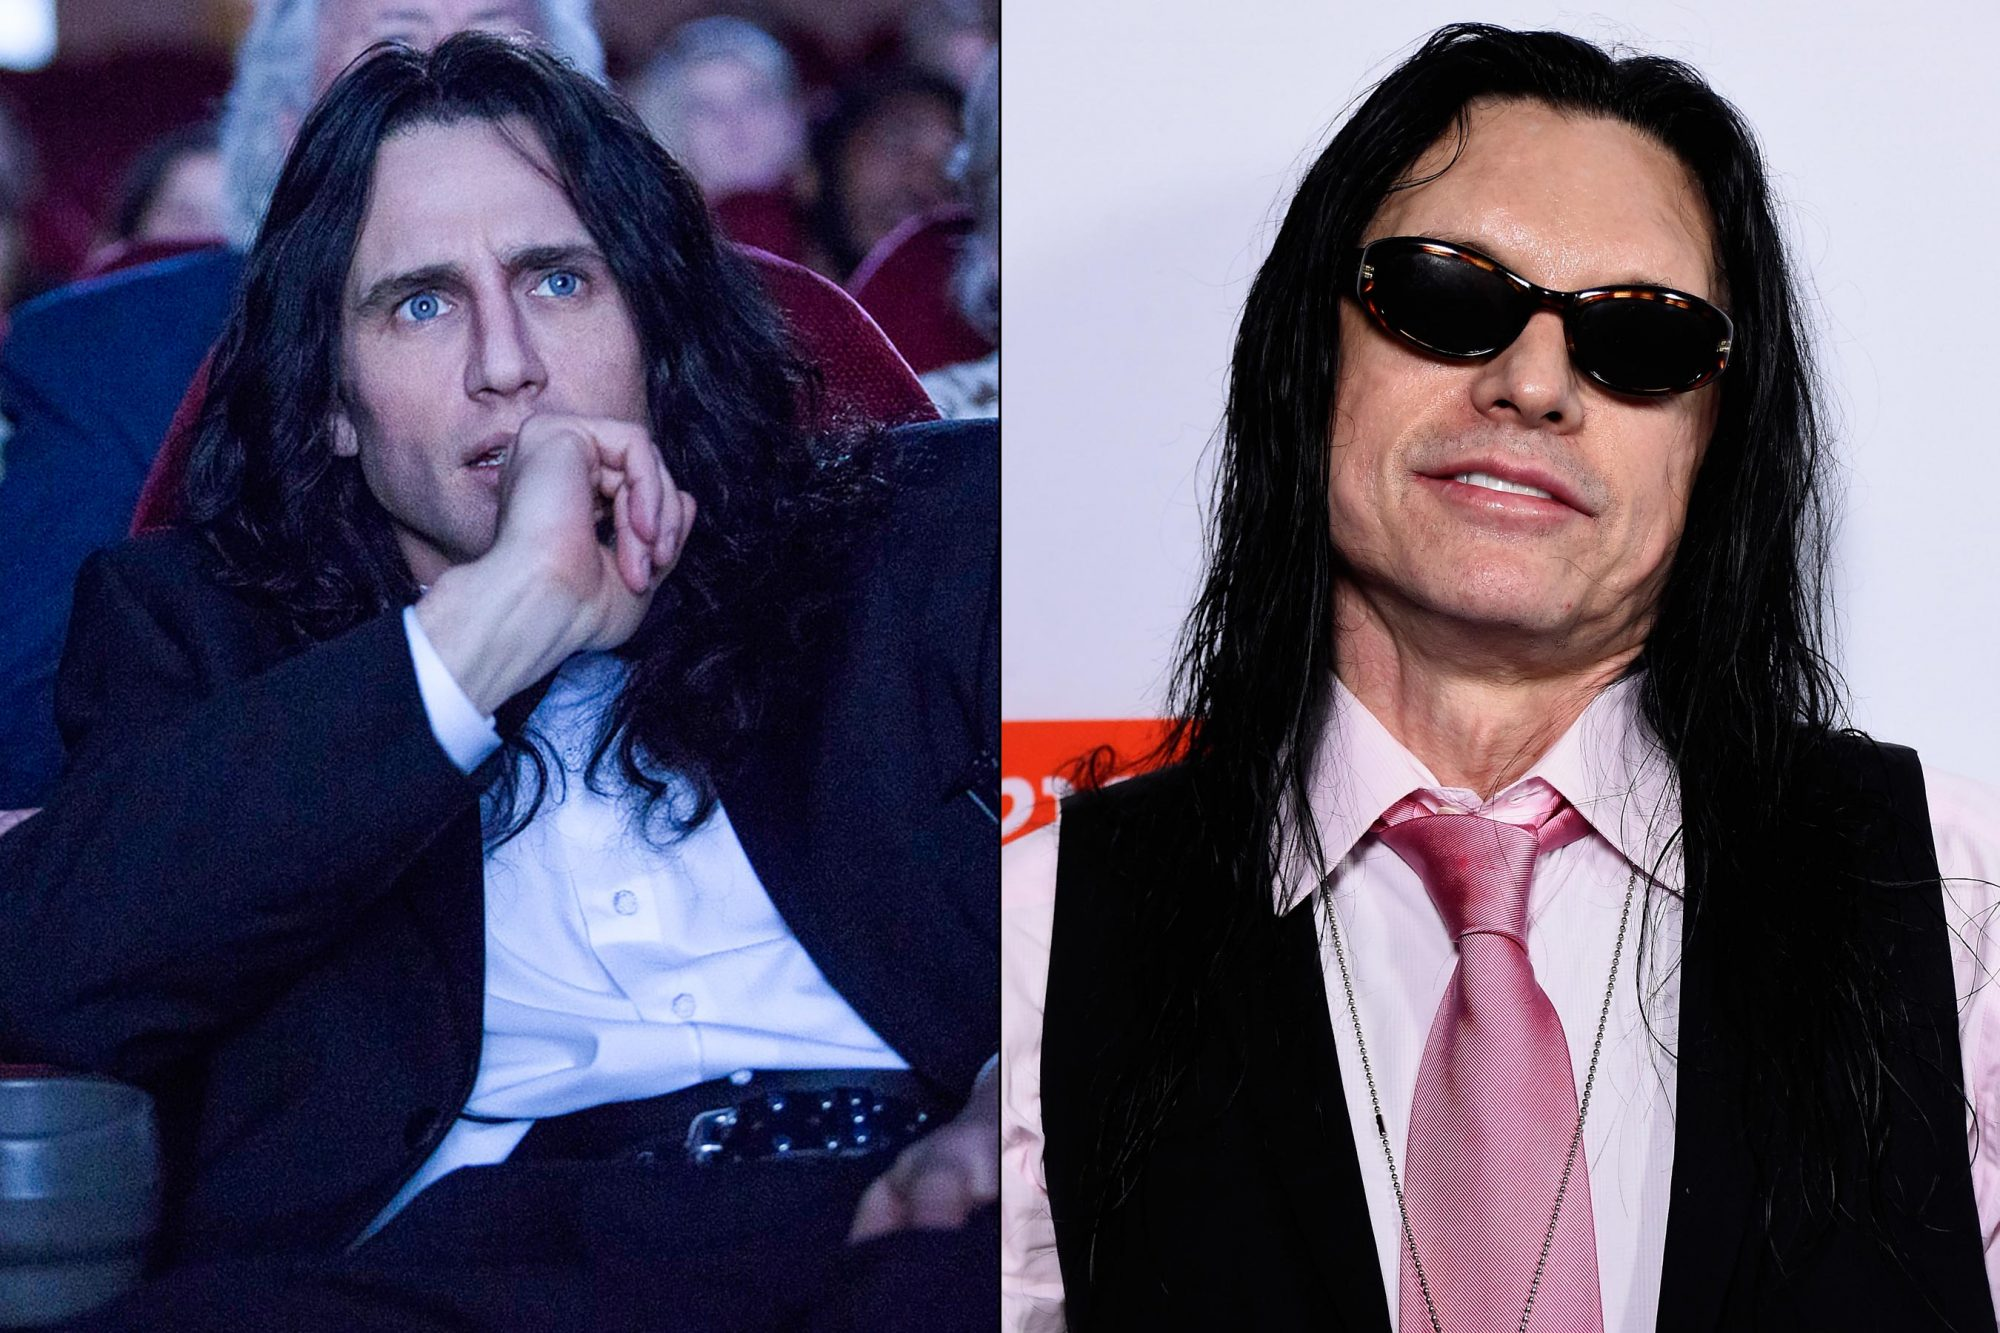 James Franco as Tommy Wiseau (The Disaster Artist)